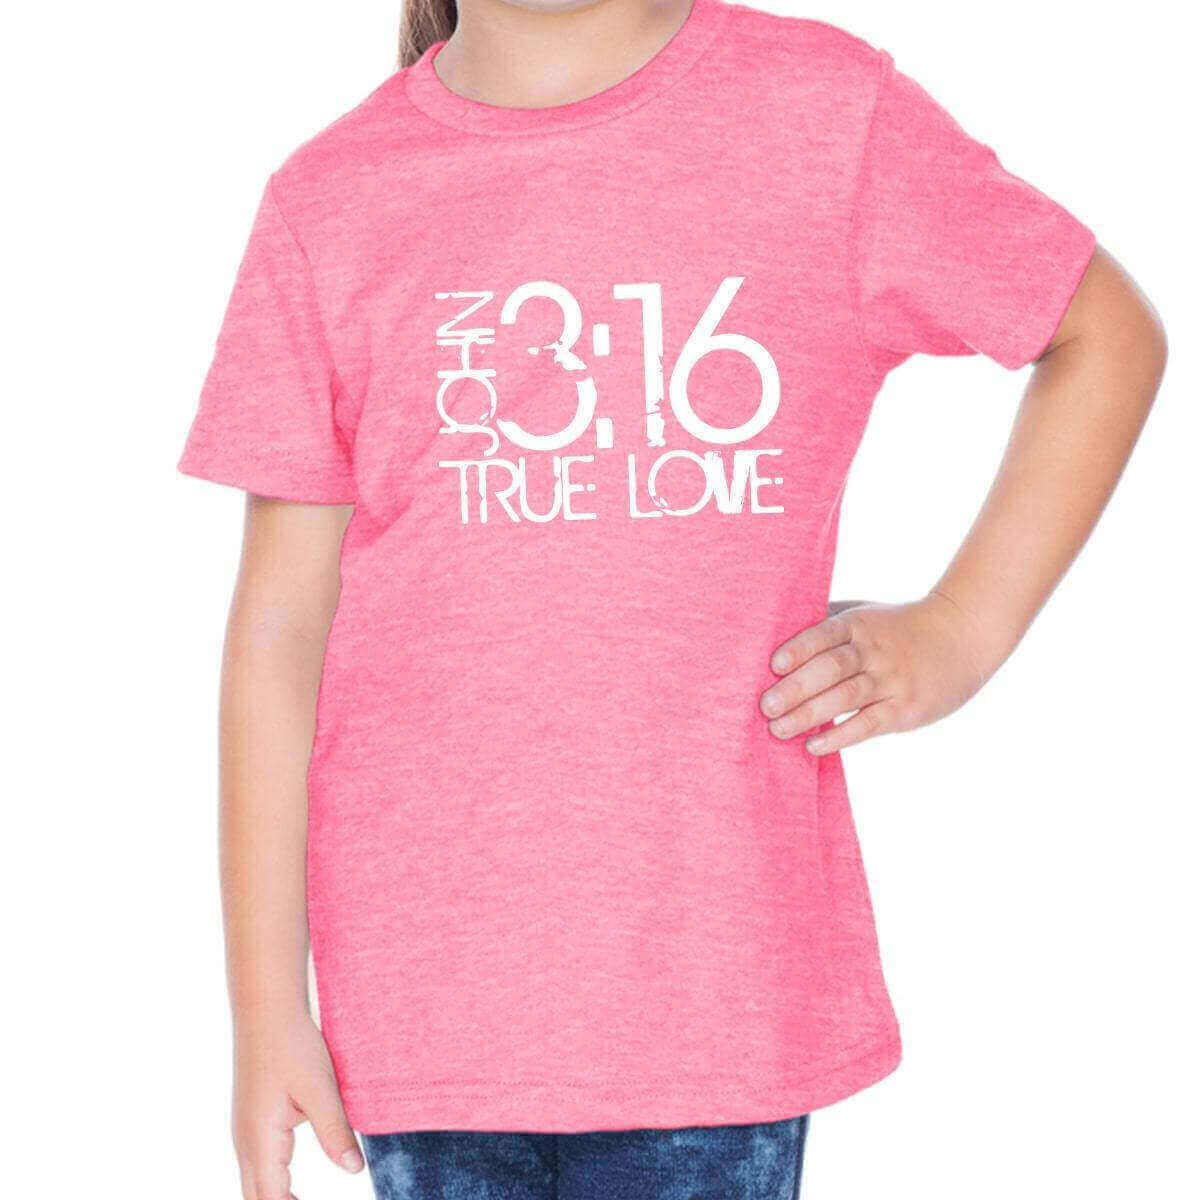 John 3:16 True Love Toddler Christian Short Sleeve T Shirt